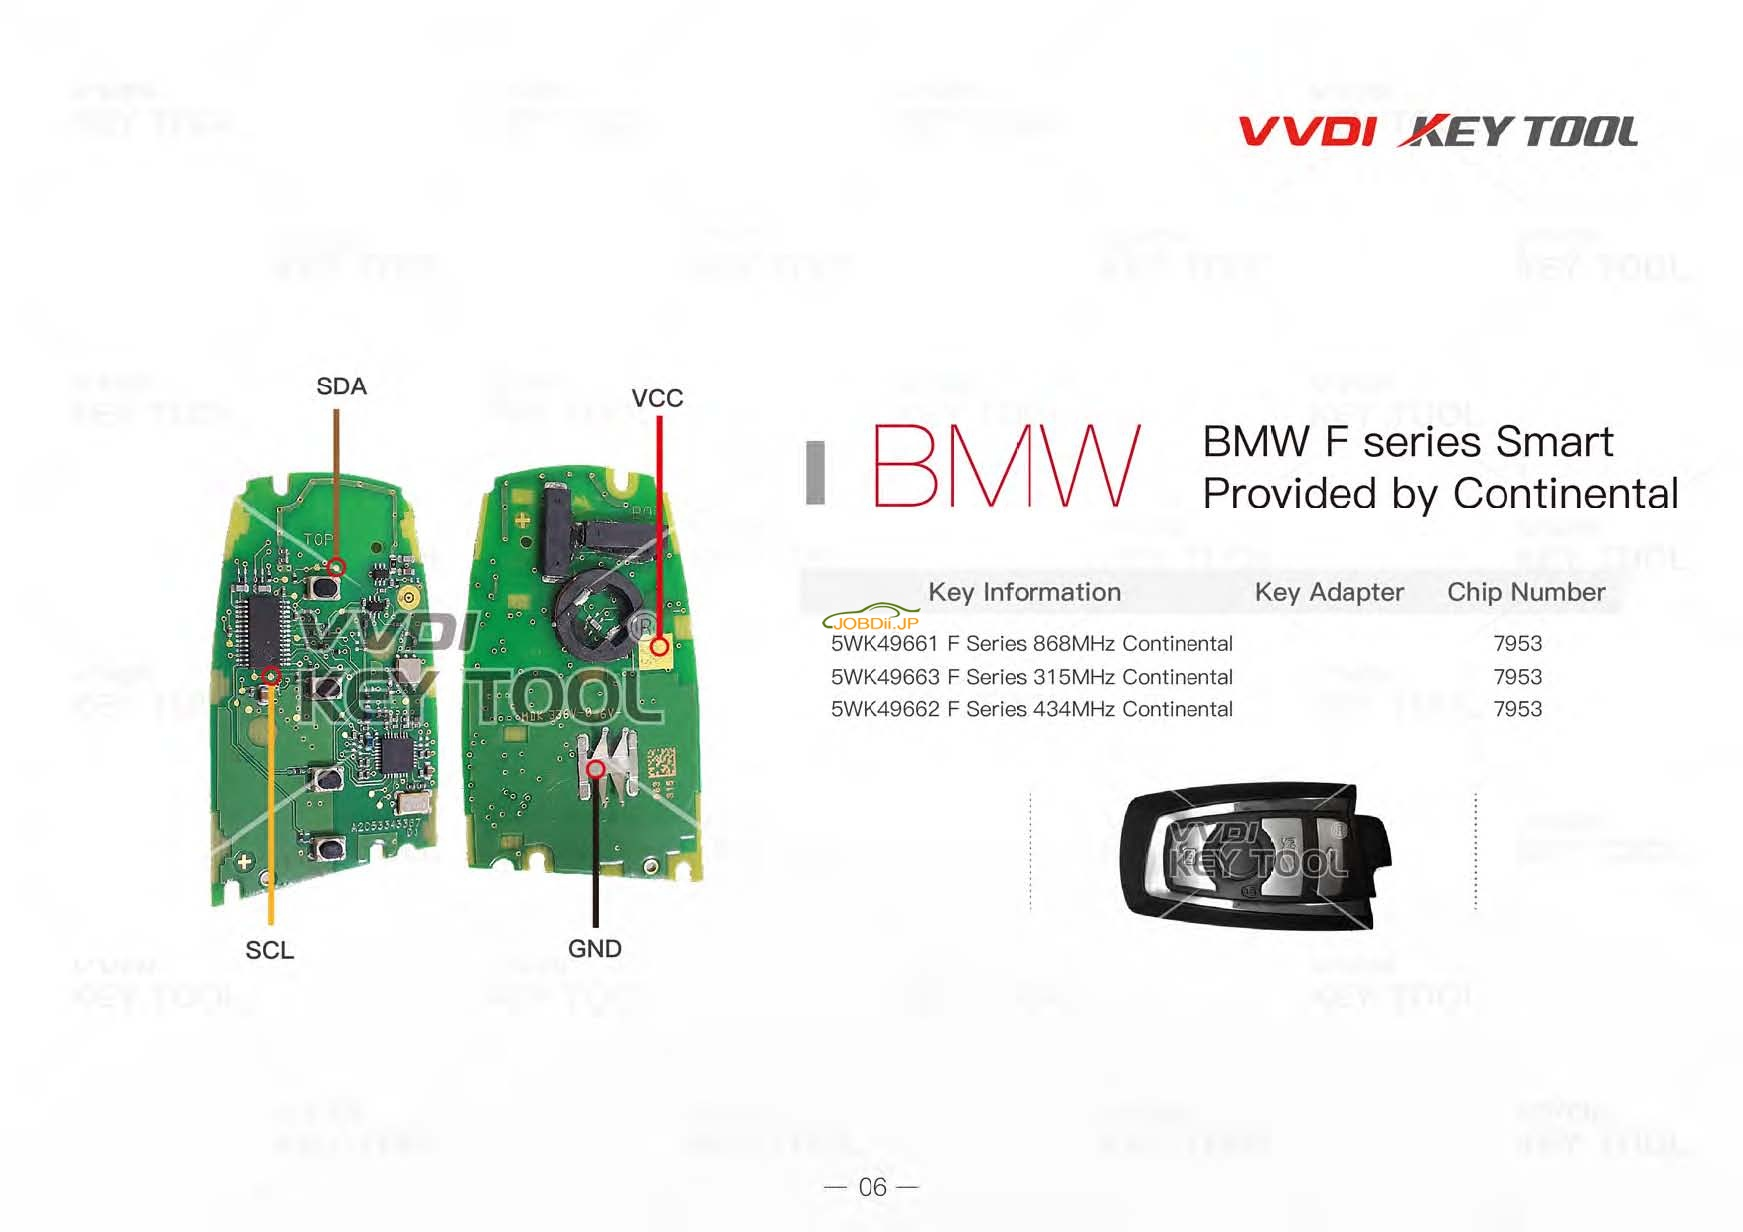 vvdi-key-tool-renew-diagram-06